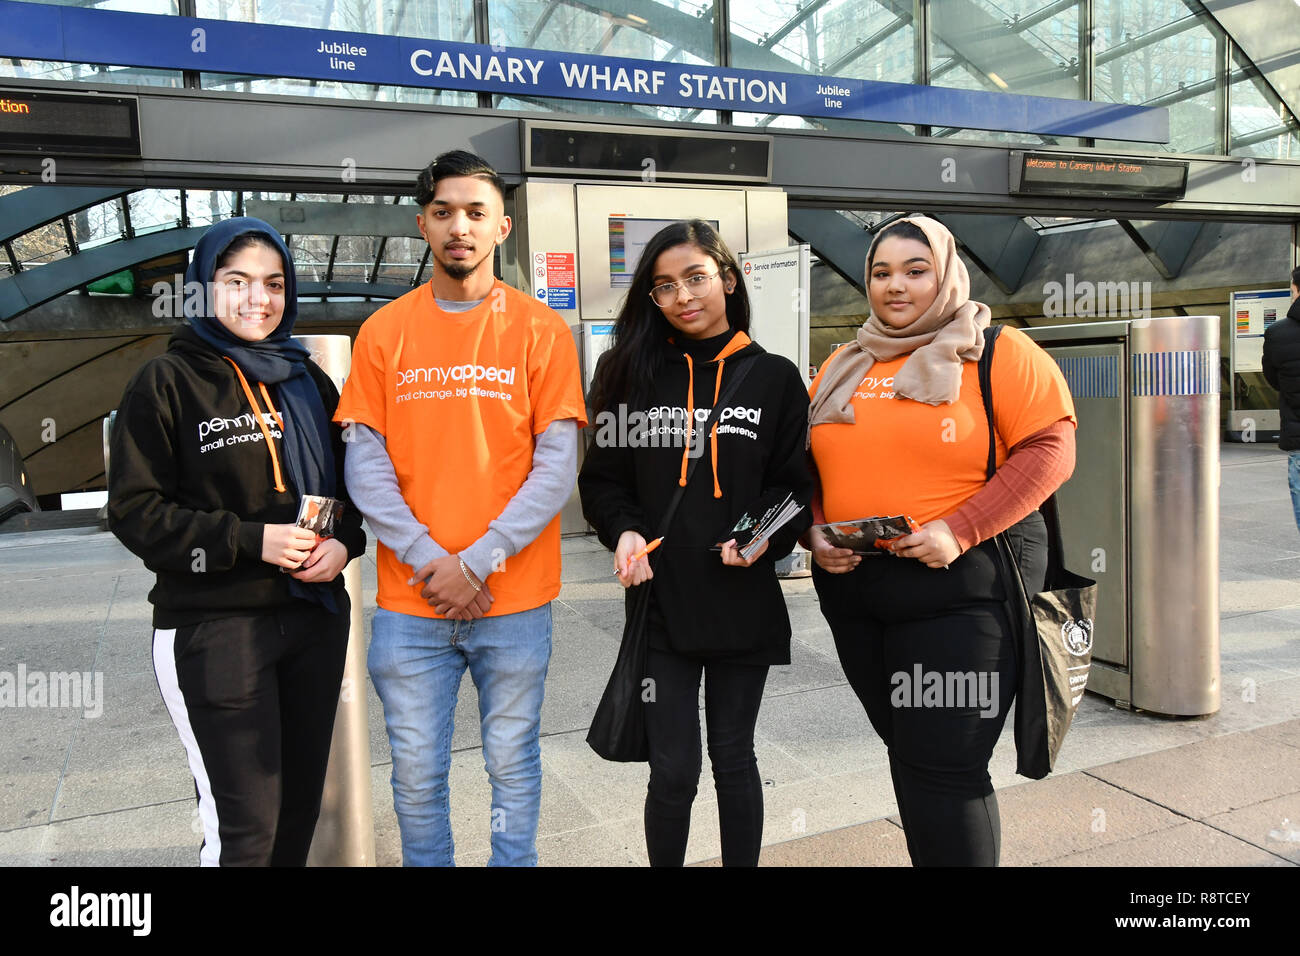 """London, UK. 17th Dec, 2018. Penny Appeal Team Orange unveiling 5 life-size ice statues """"What Would Jesus Do?"""", symbolising homeless families to promote their winter campaign. The frozen family will depict the plight of the 140* families who become homeless everyday, and the 900* children who become homeless every month on 17th December at Canary Wharf, London, UK. Credit: Picture Capital/Alamy Live News - Stock Image"""